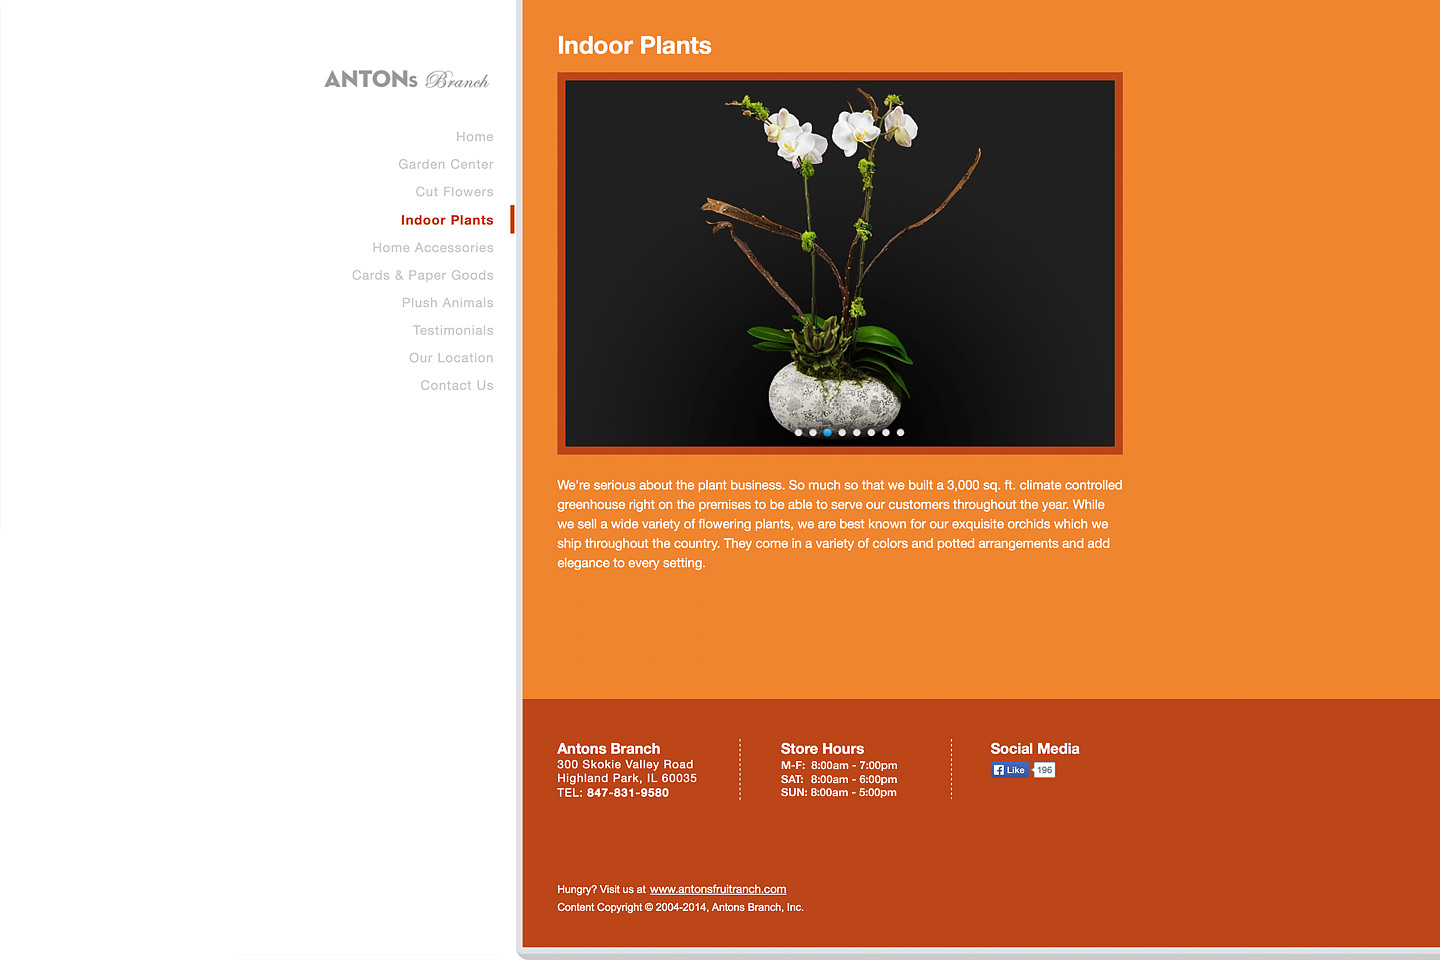 a screen capture of the indoor plants page, featuring a beautiful potted phalaenopsis orchid plant for sale at the antons branch